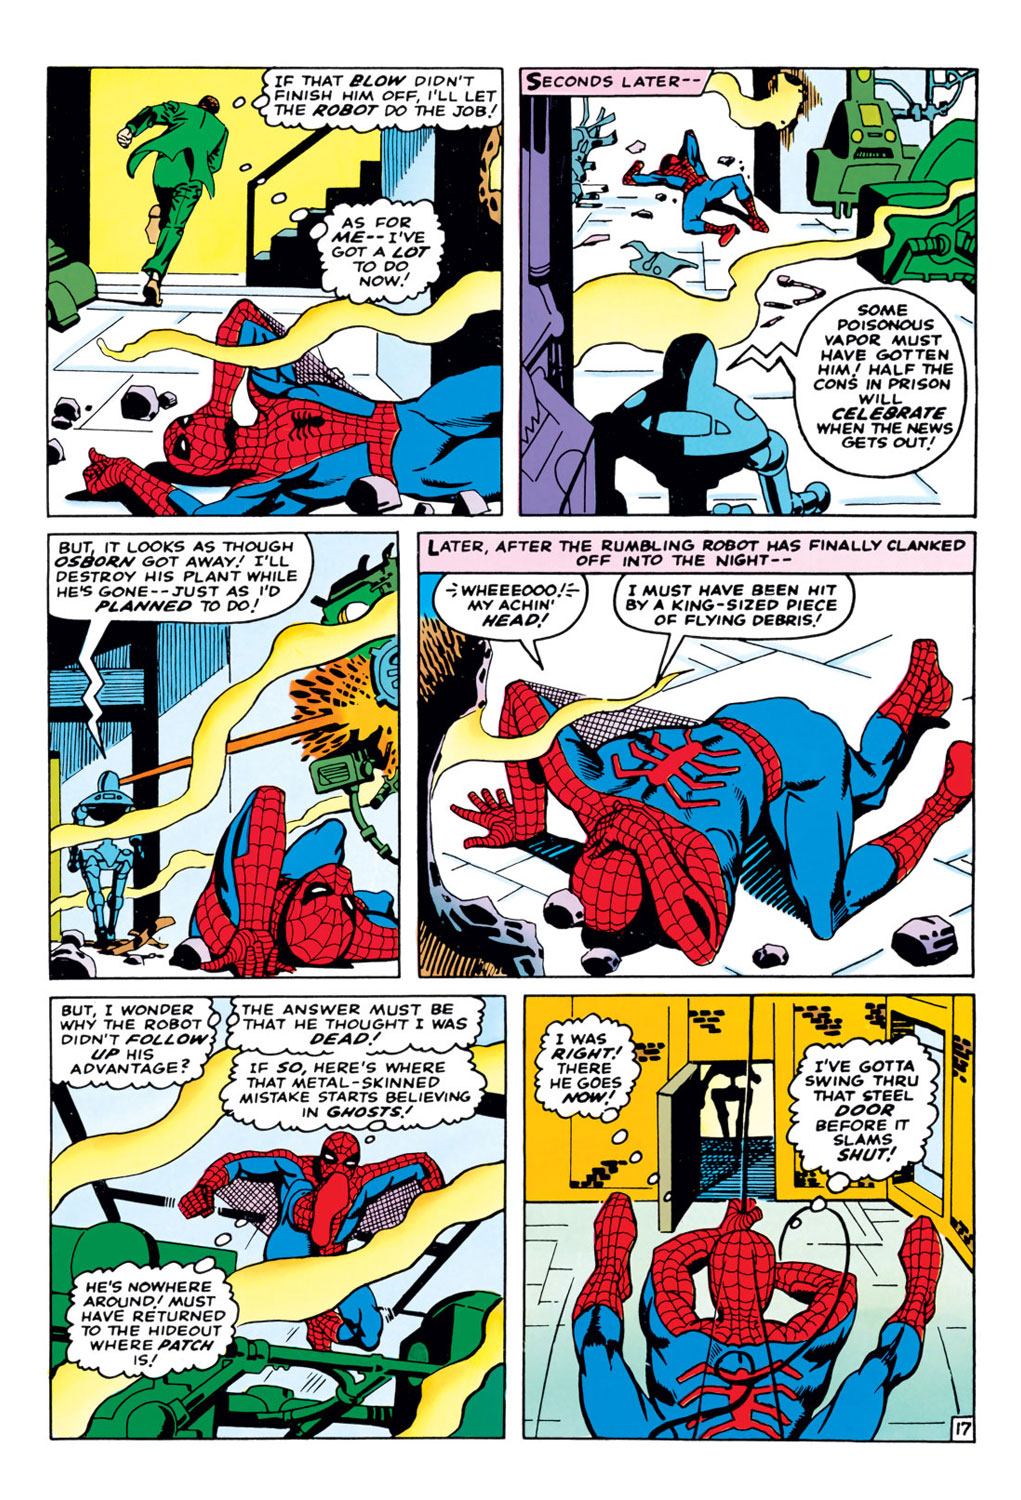 The Amazing Spider-Man (1963) 37 Page 17